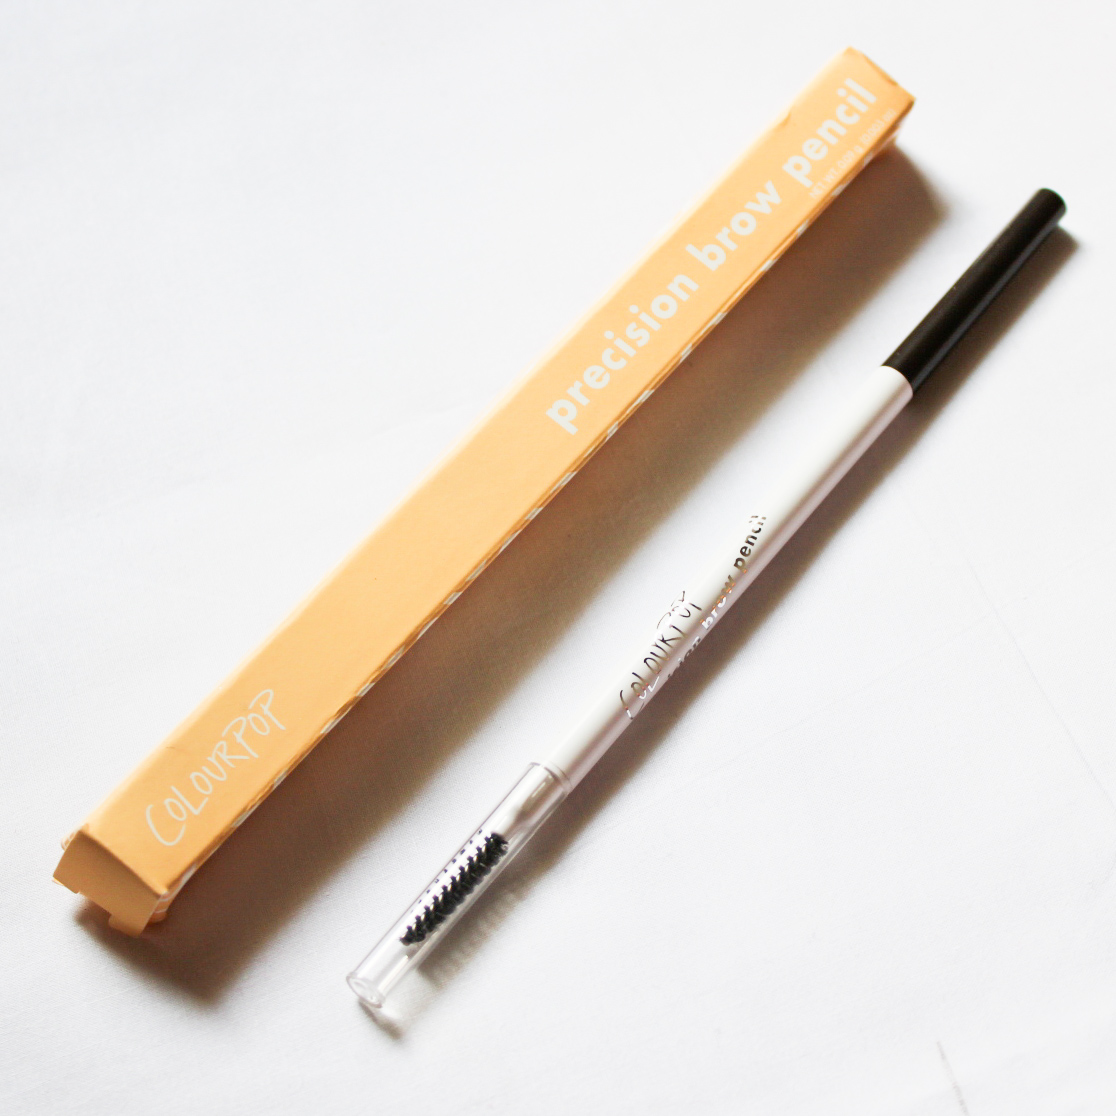 Colourpop Precision Brow Pencil Review